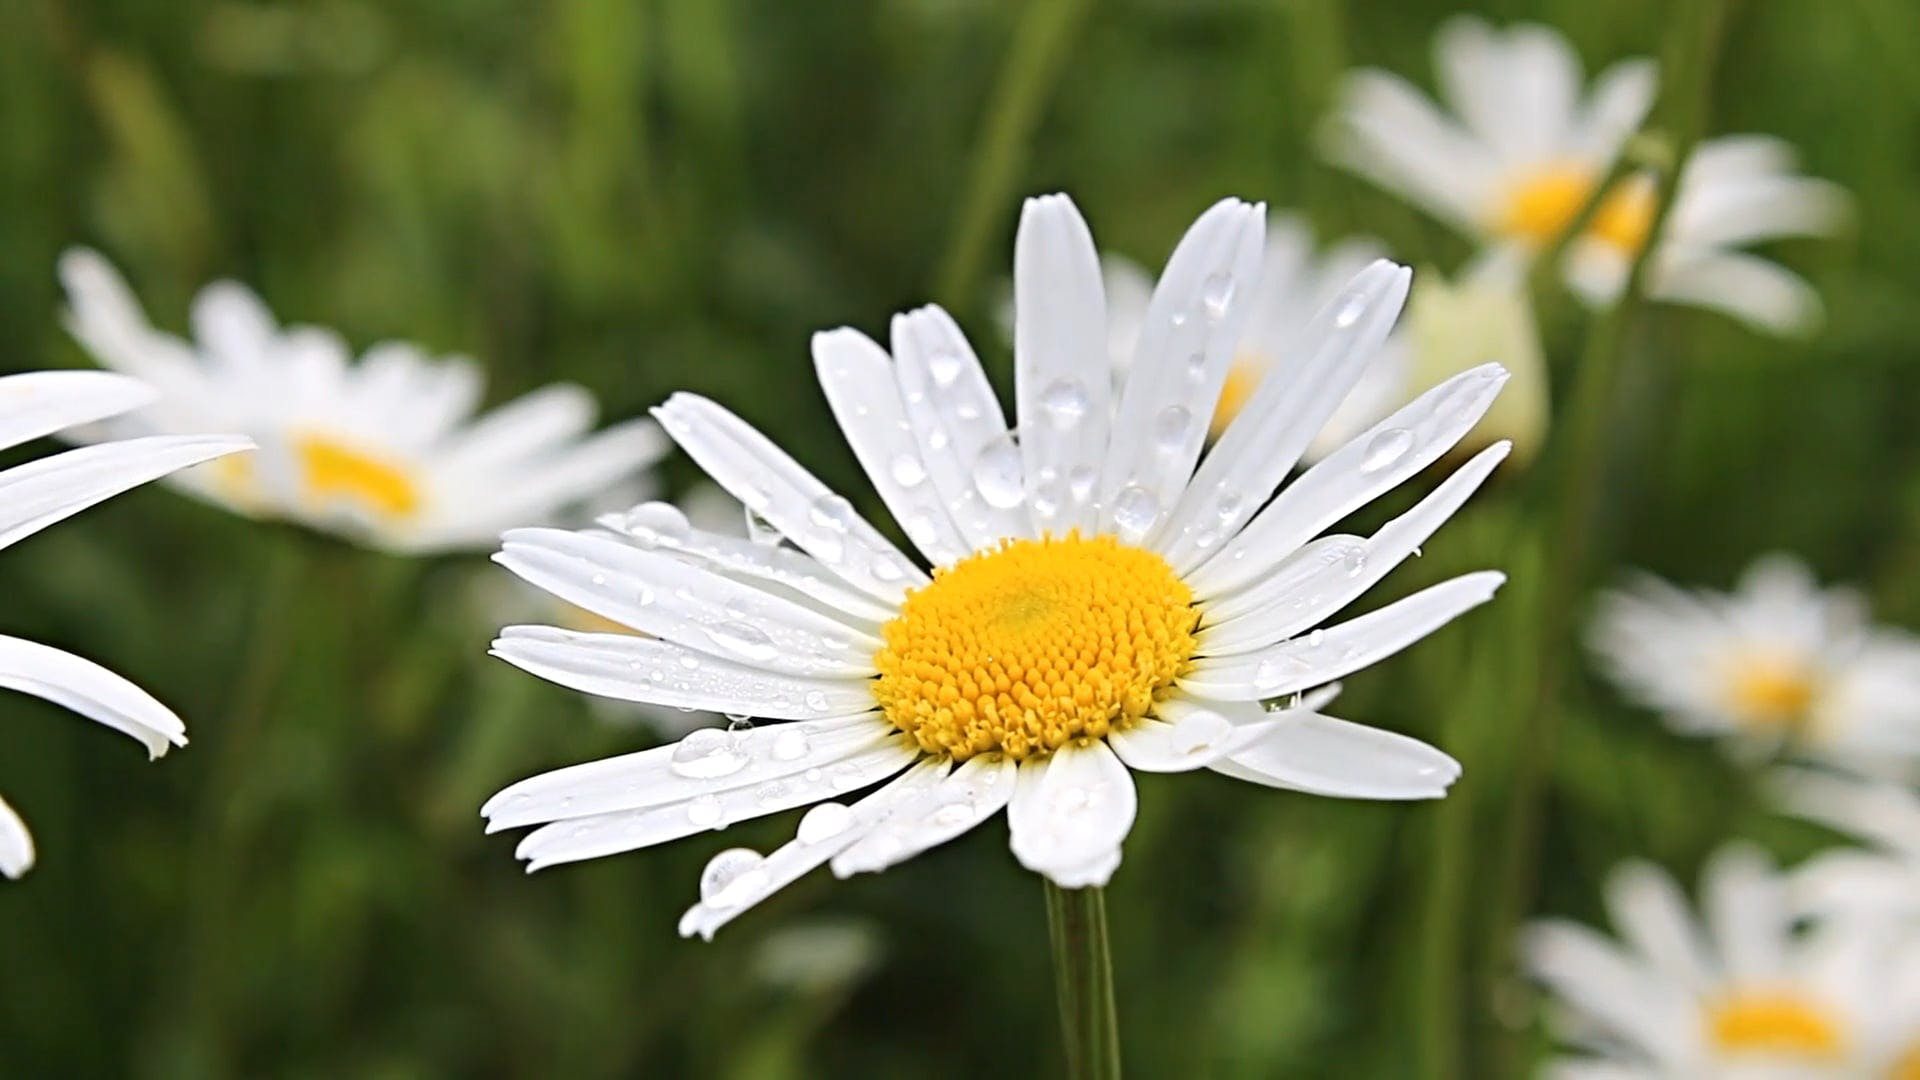 Close Up Video Of Daisy Flower